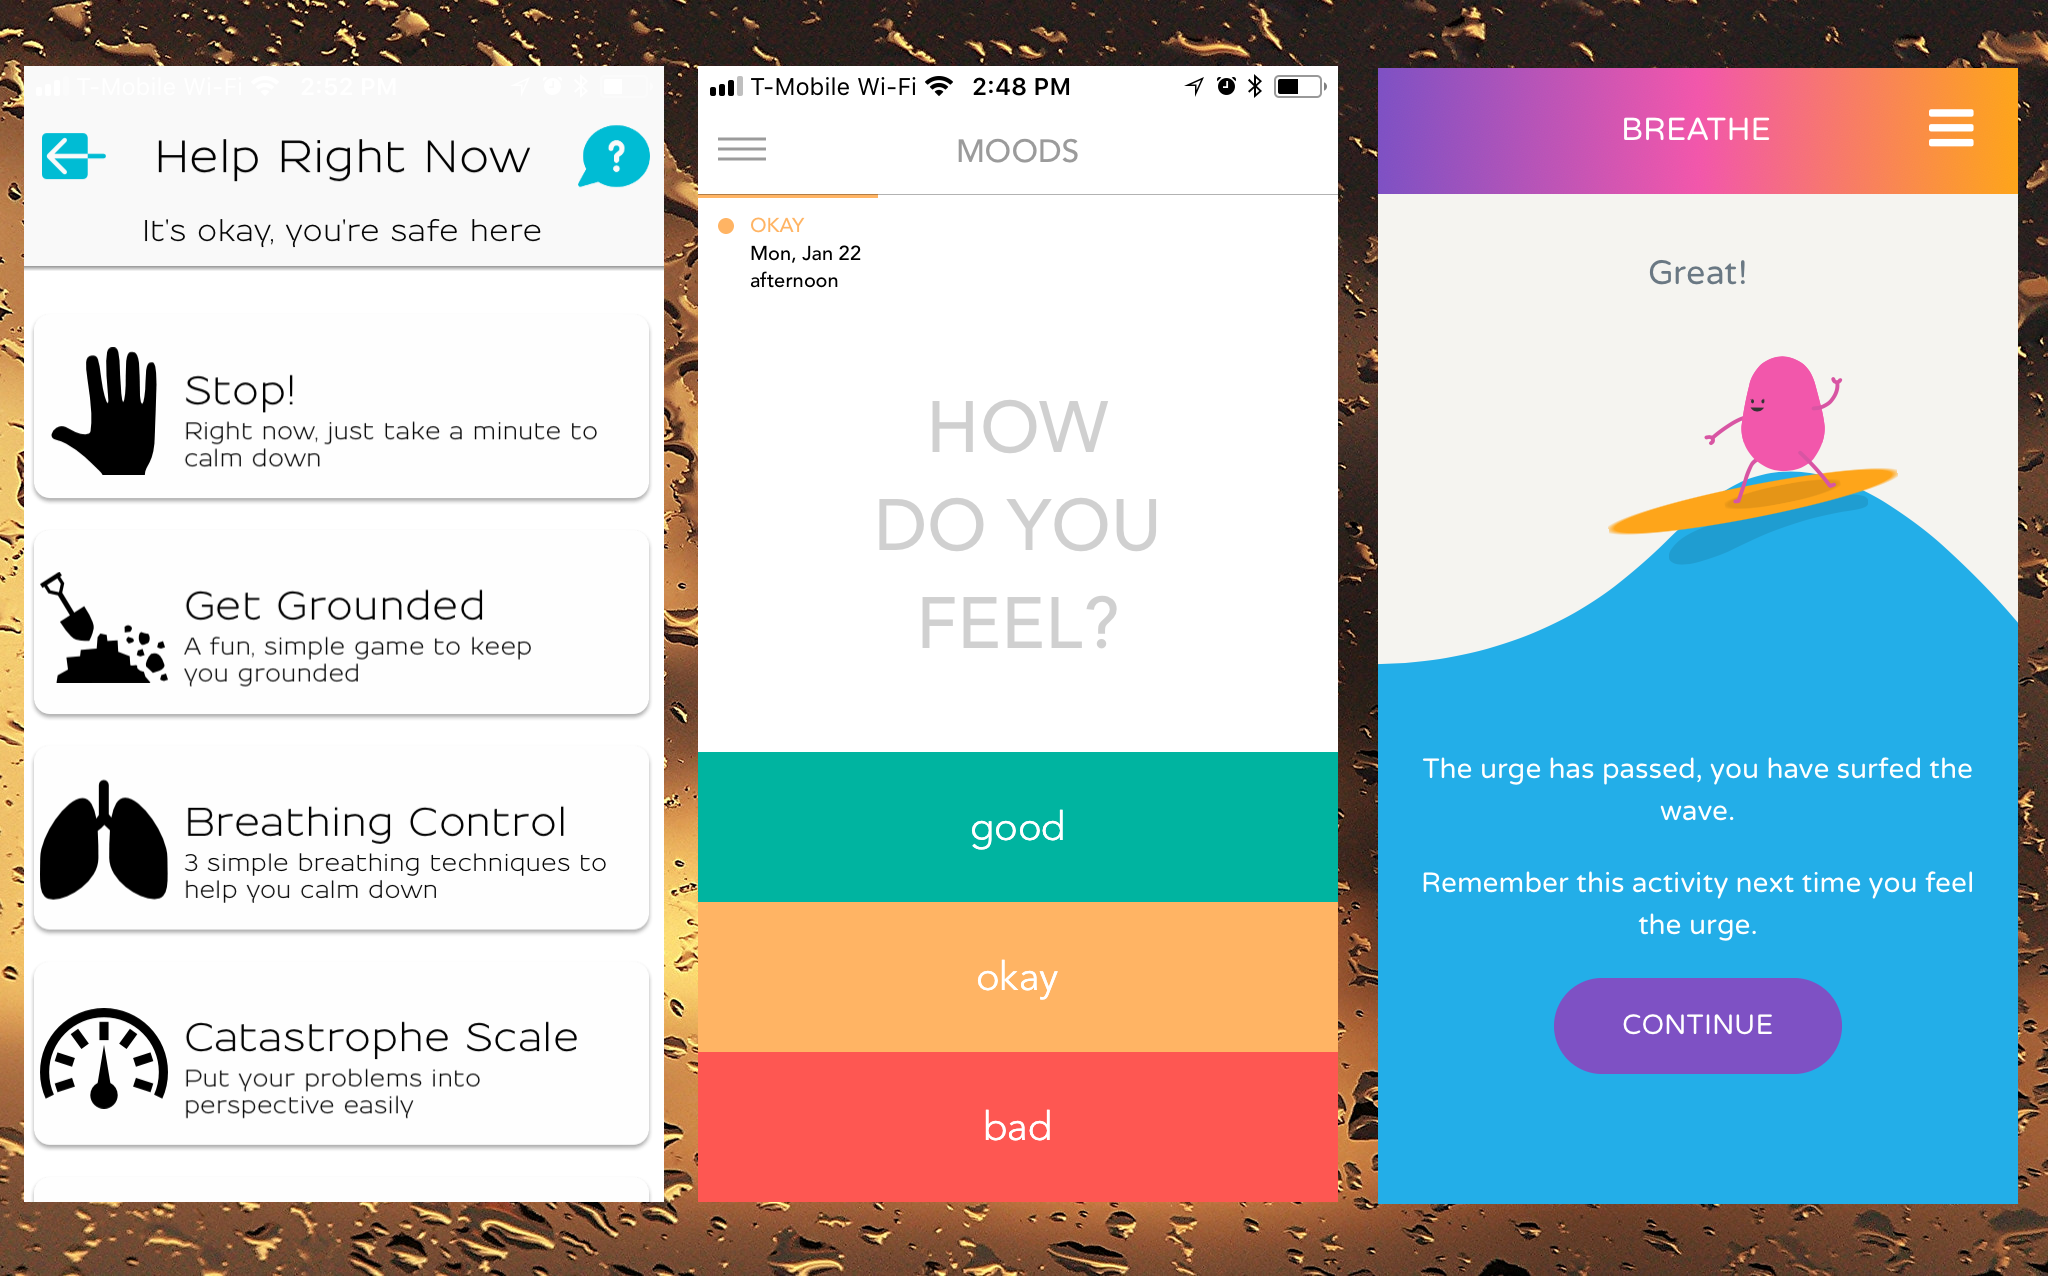 Get Through An Urge To Self-Harm With These Apps